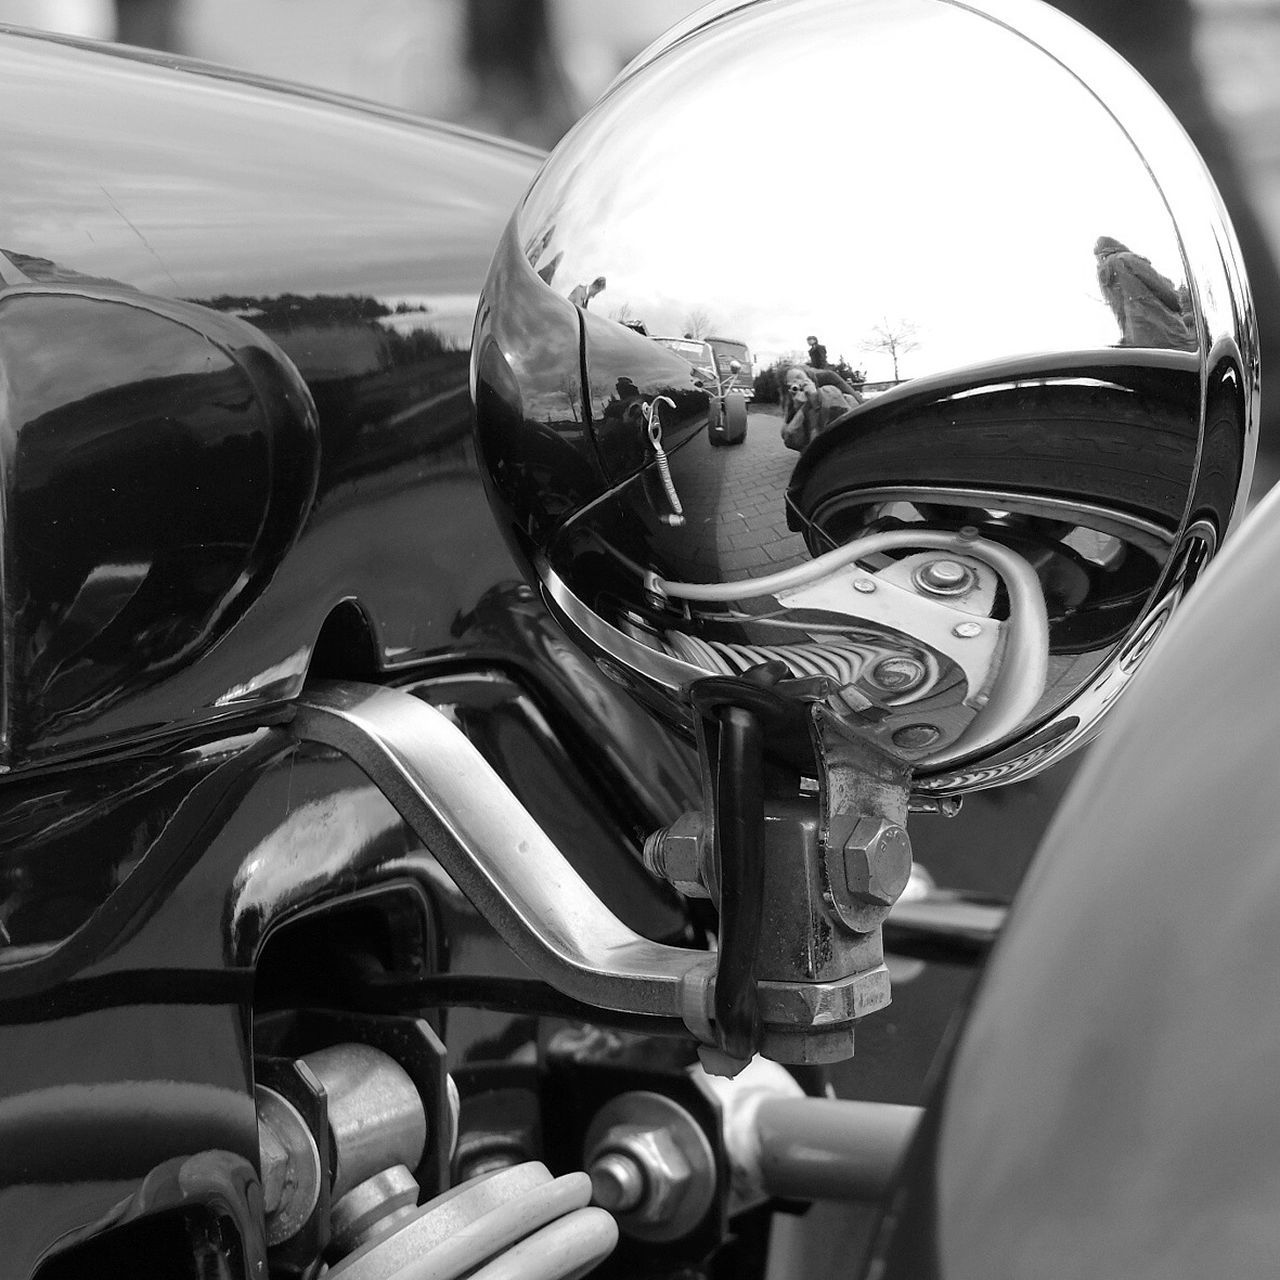 motorcycle, mode of transport, transportation, reflection, close-up, land vehicle, helmet, side-view mirror, no people, old-fashioned, outdoors, day, headwear, scooter